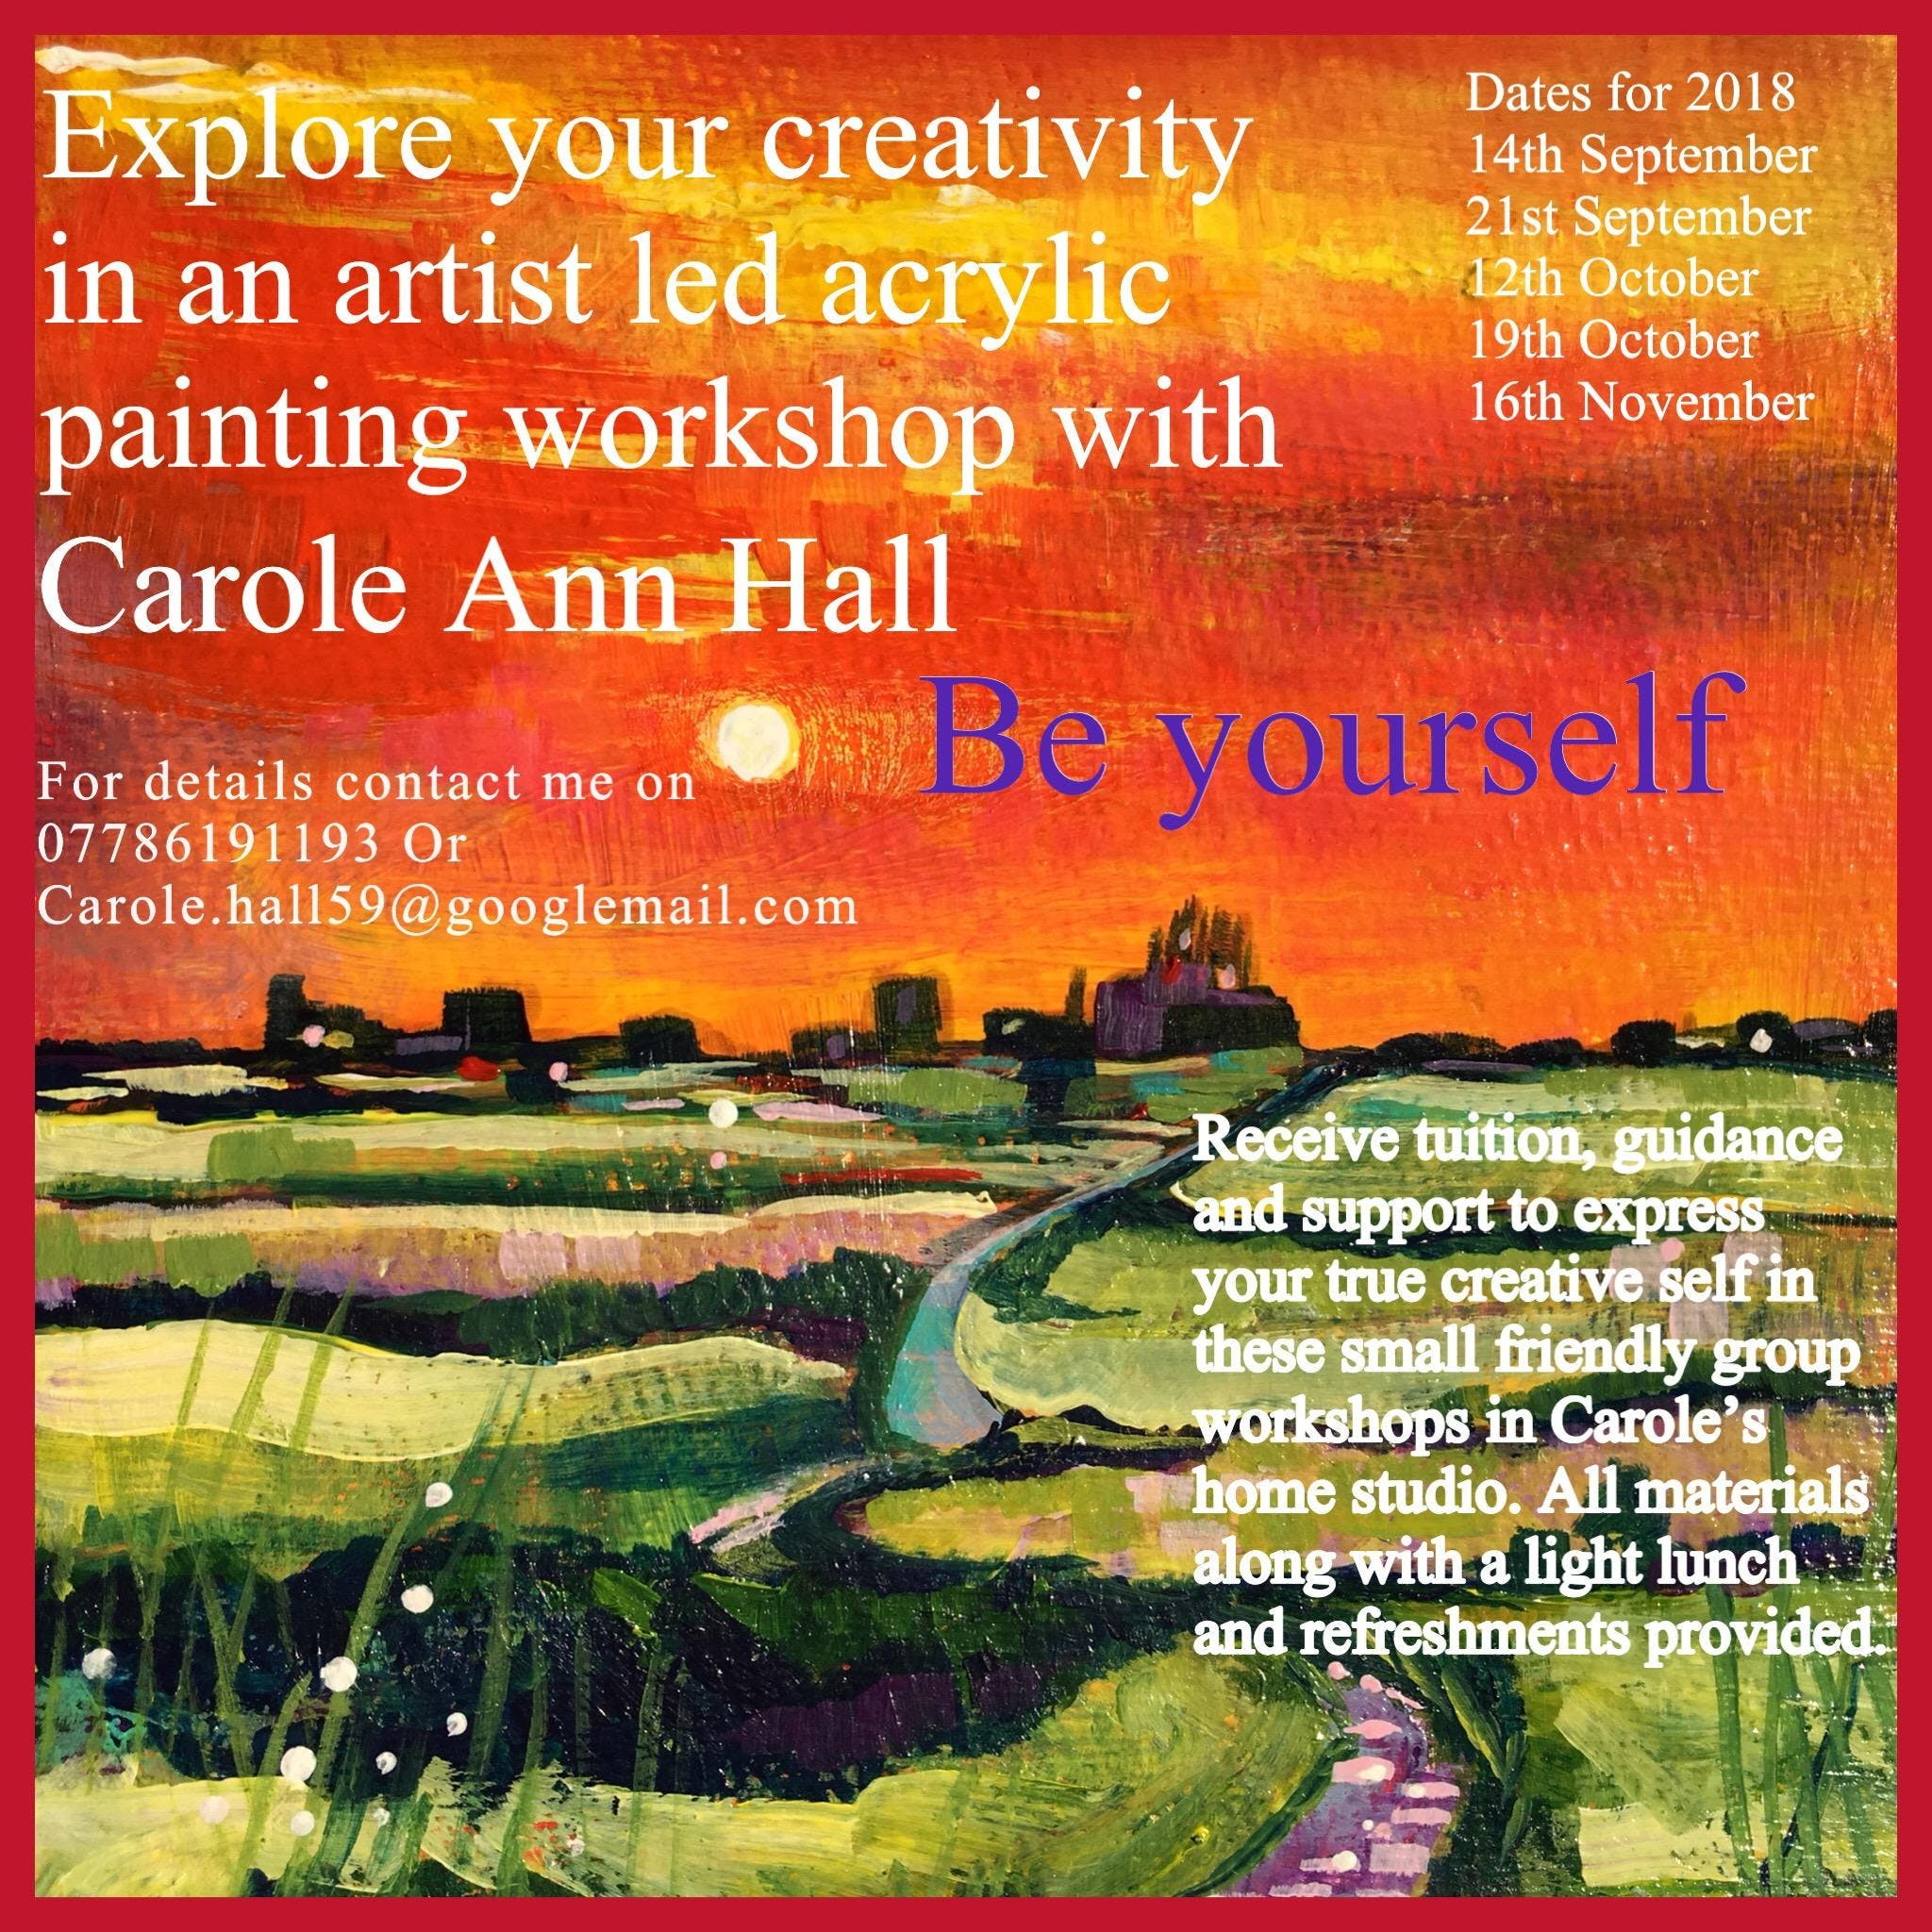 12th October Acrylic painting workshop